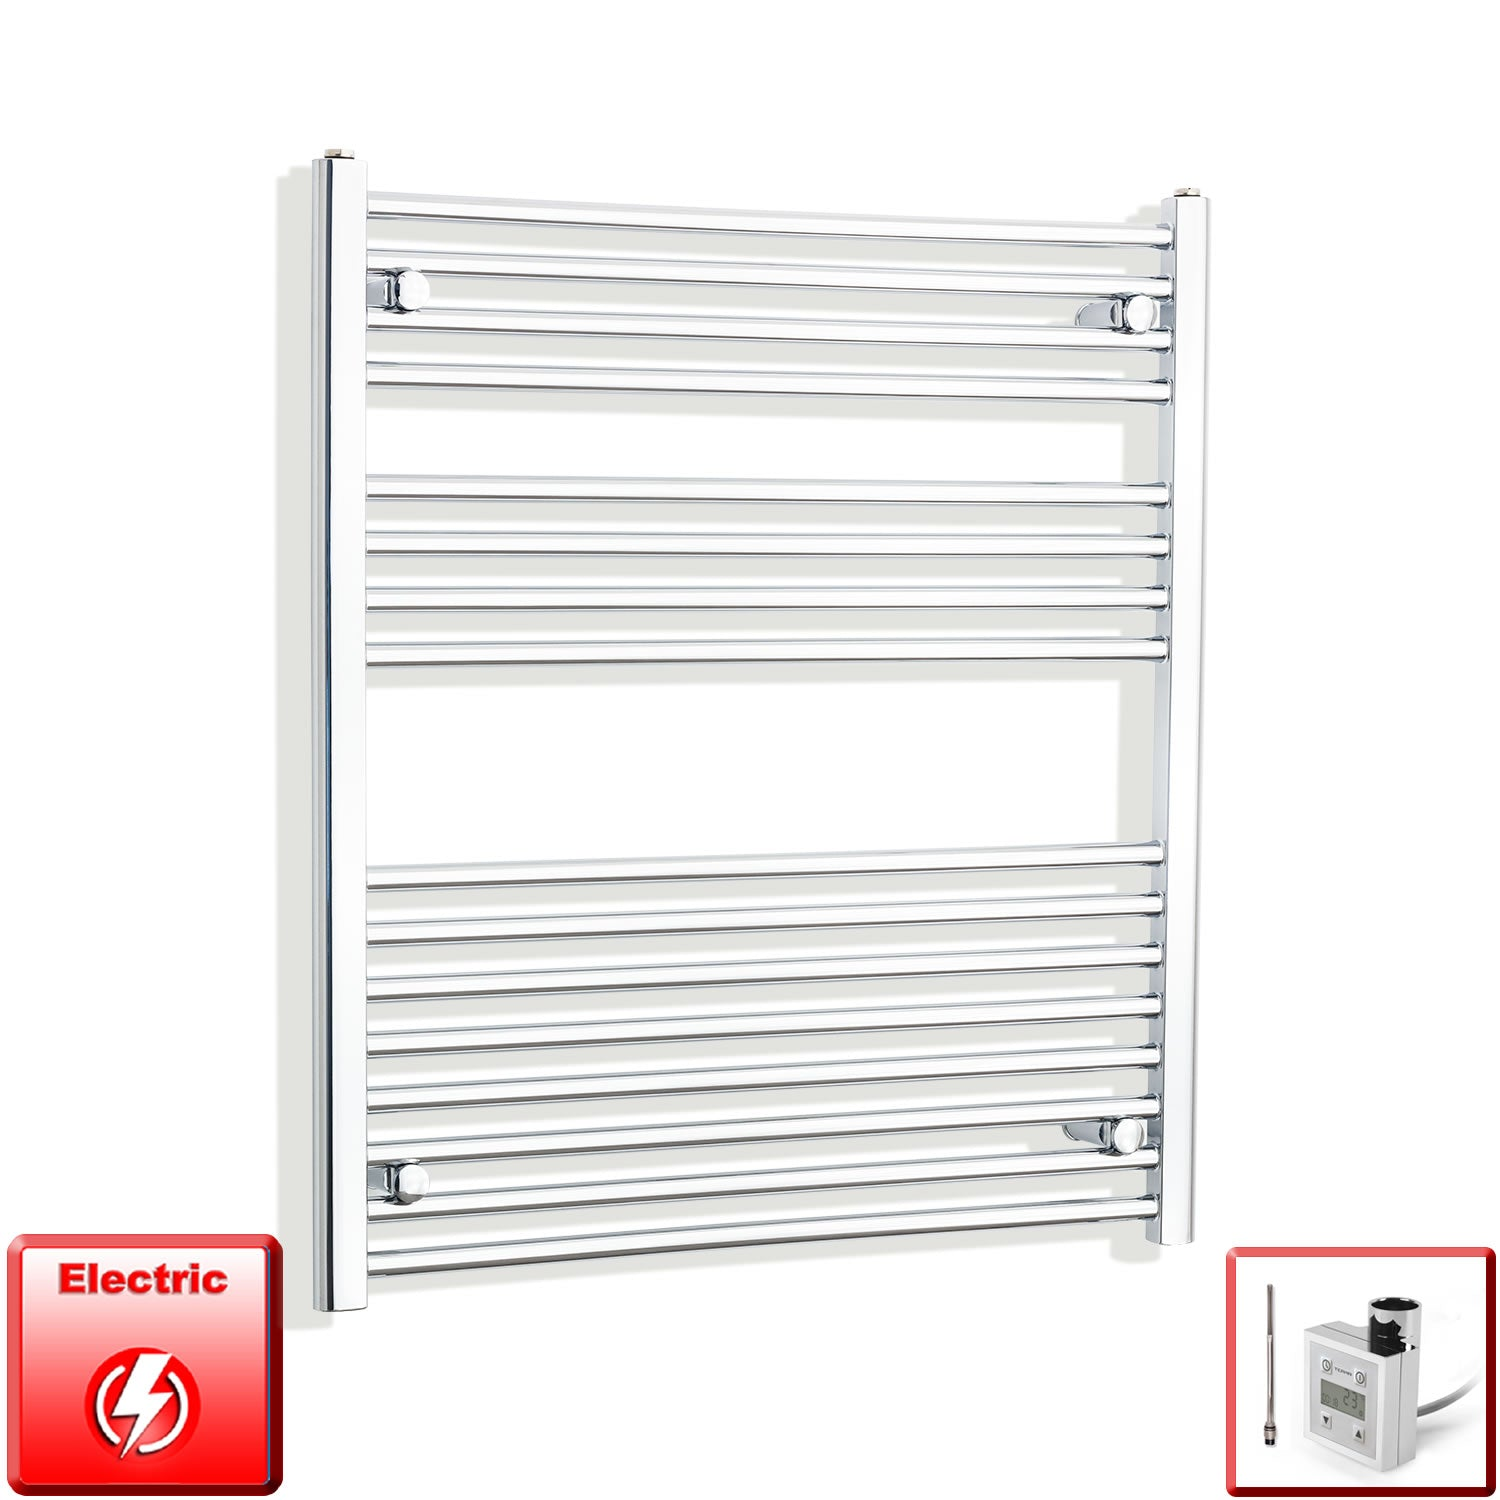 800mm Wide 900mm High Flat Chrome Pre-Filled Electric Heated Towel Rail Radiator HTR,KTX-3 Thermostatic Element